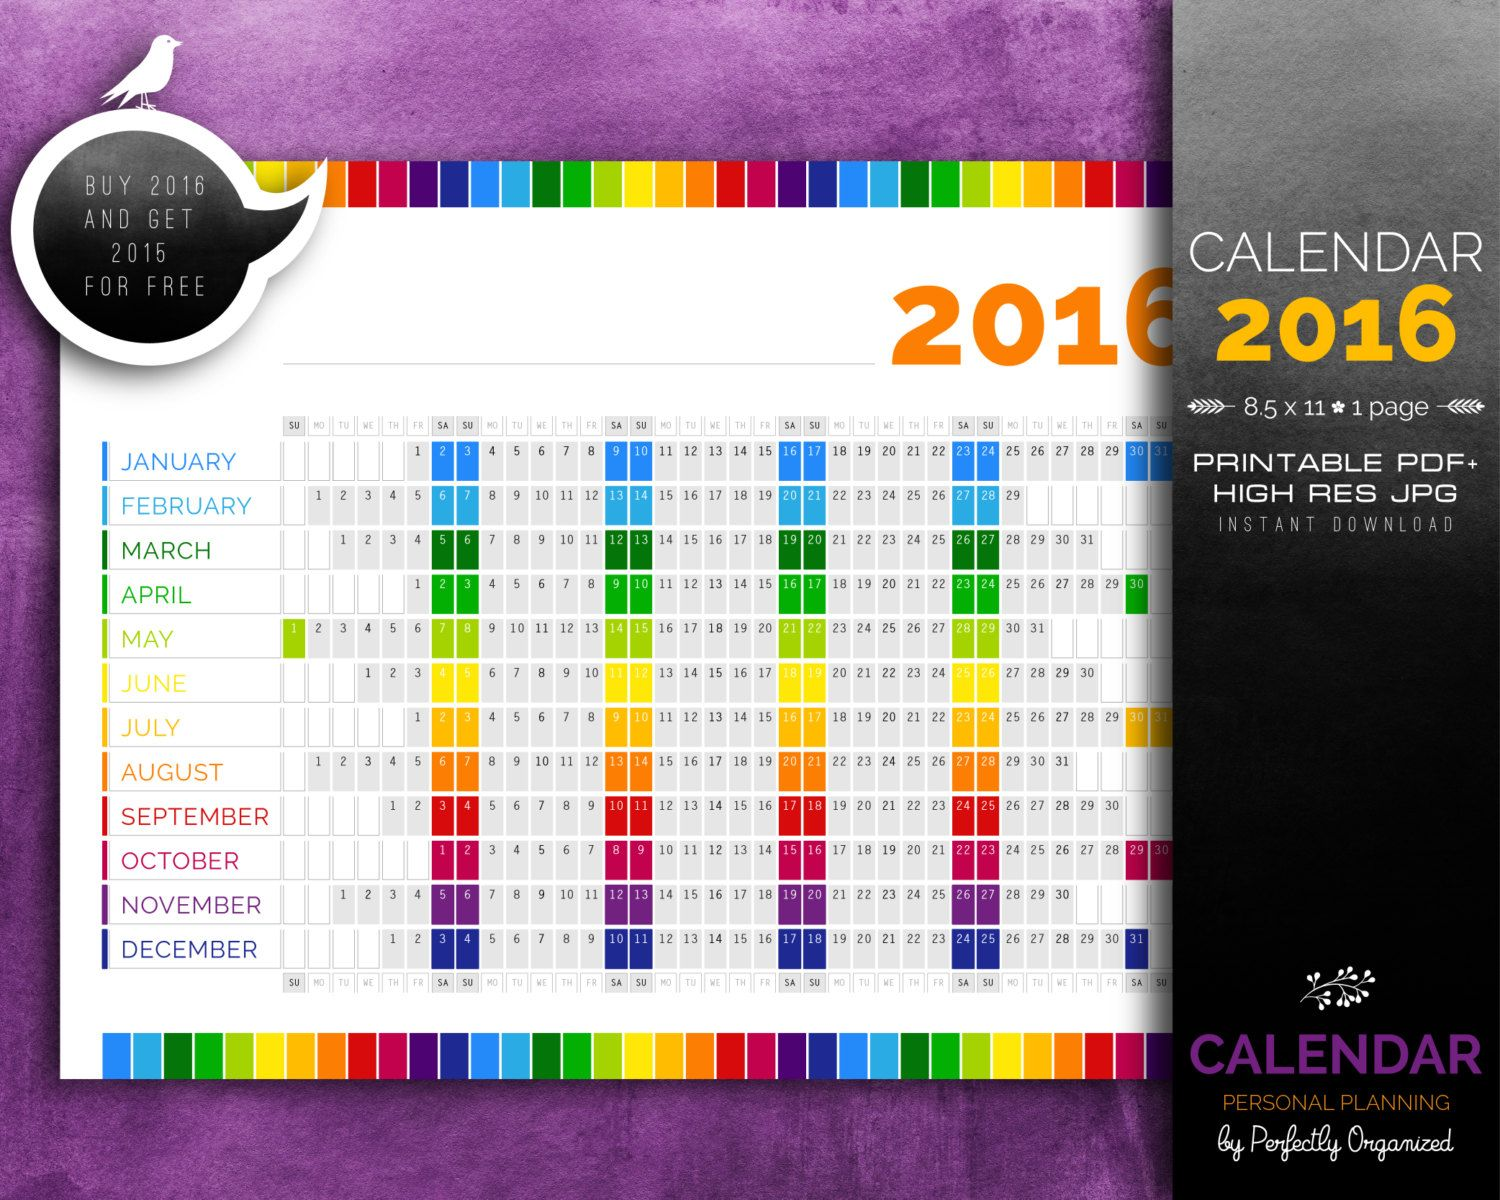 Calendar Year Calendar Personal Planning Kit  Rainbow